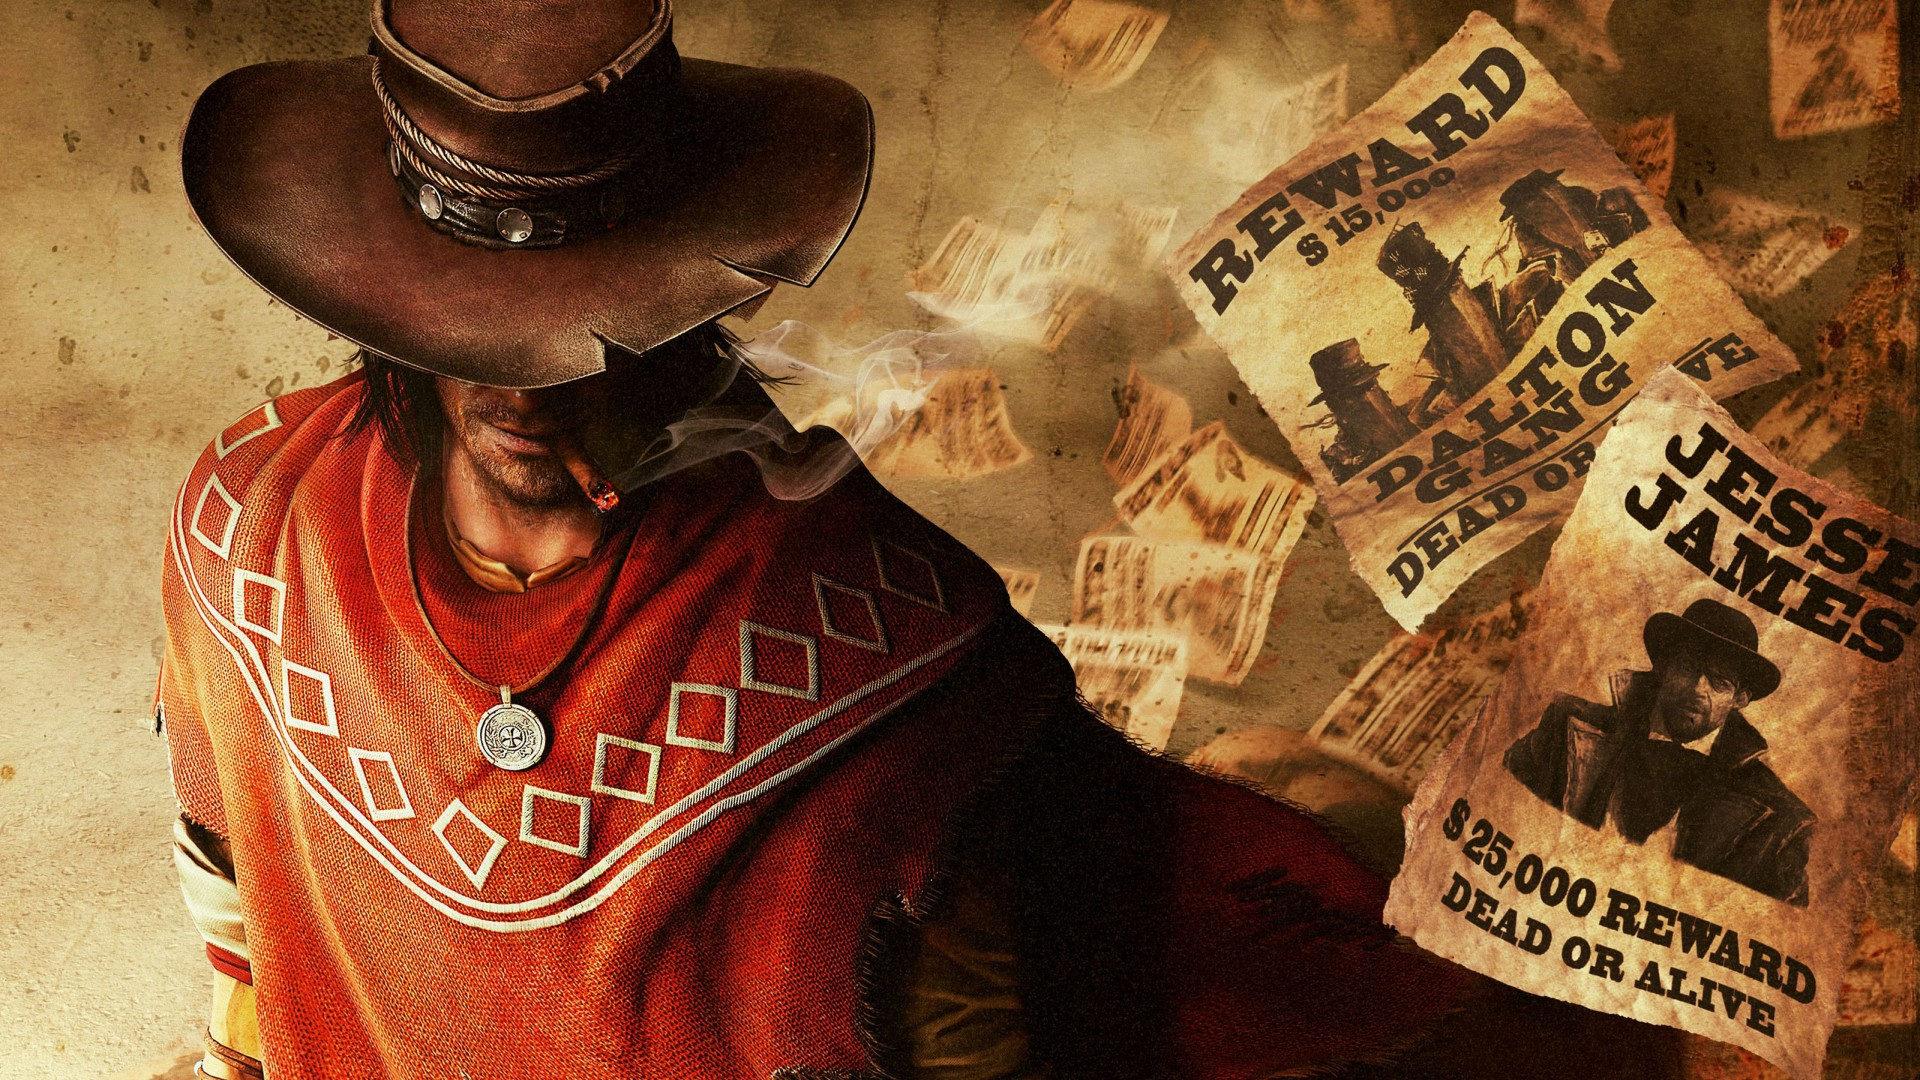 Red Dead Redemption, game, Adventure games, Action games, RPG, Red Dead, cowboy, gun, poncho, screenshot, Rockstar (horizontal)